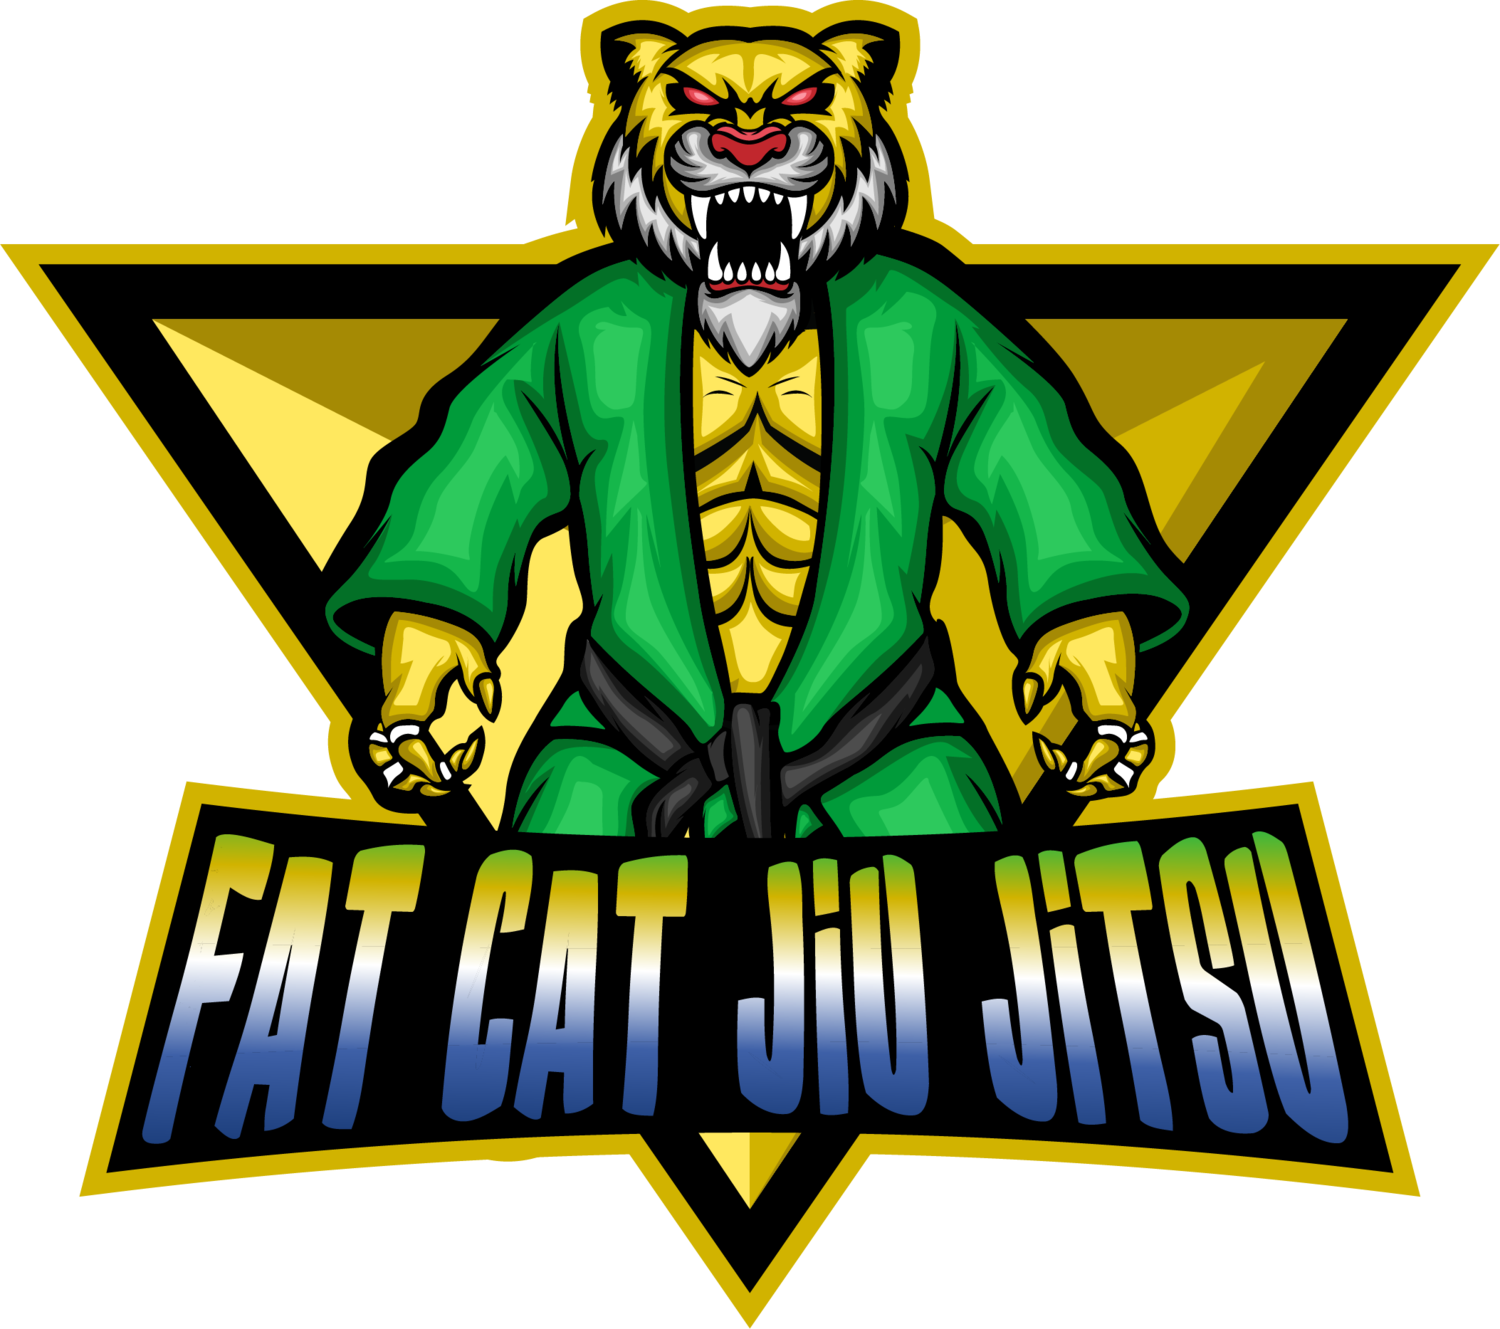 FAT CAT JIU JITSU 845-222-6283